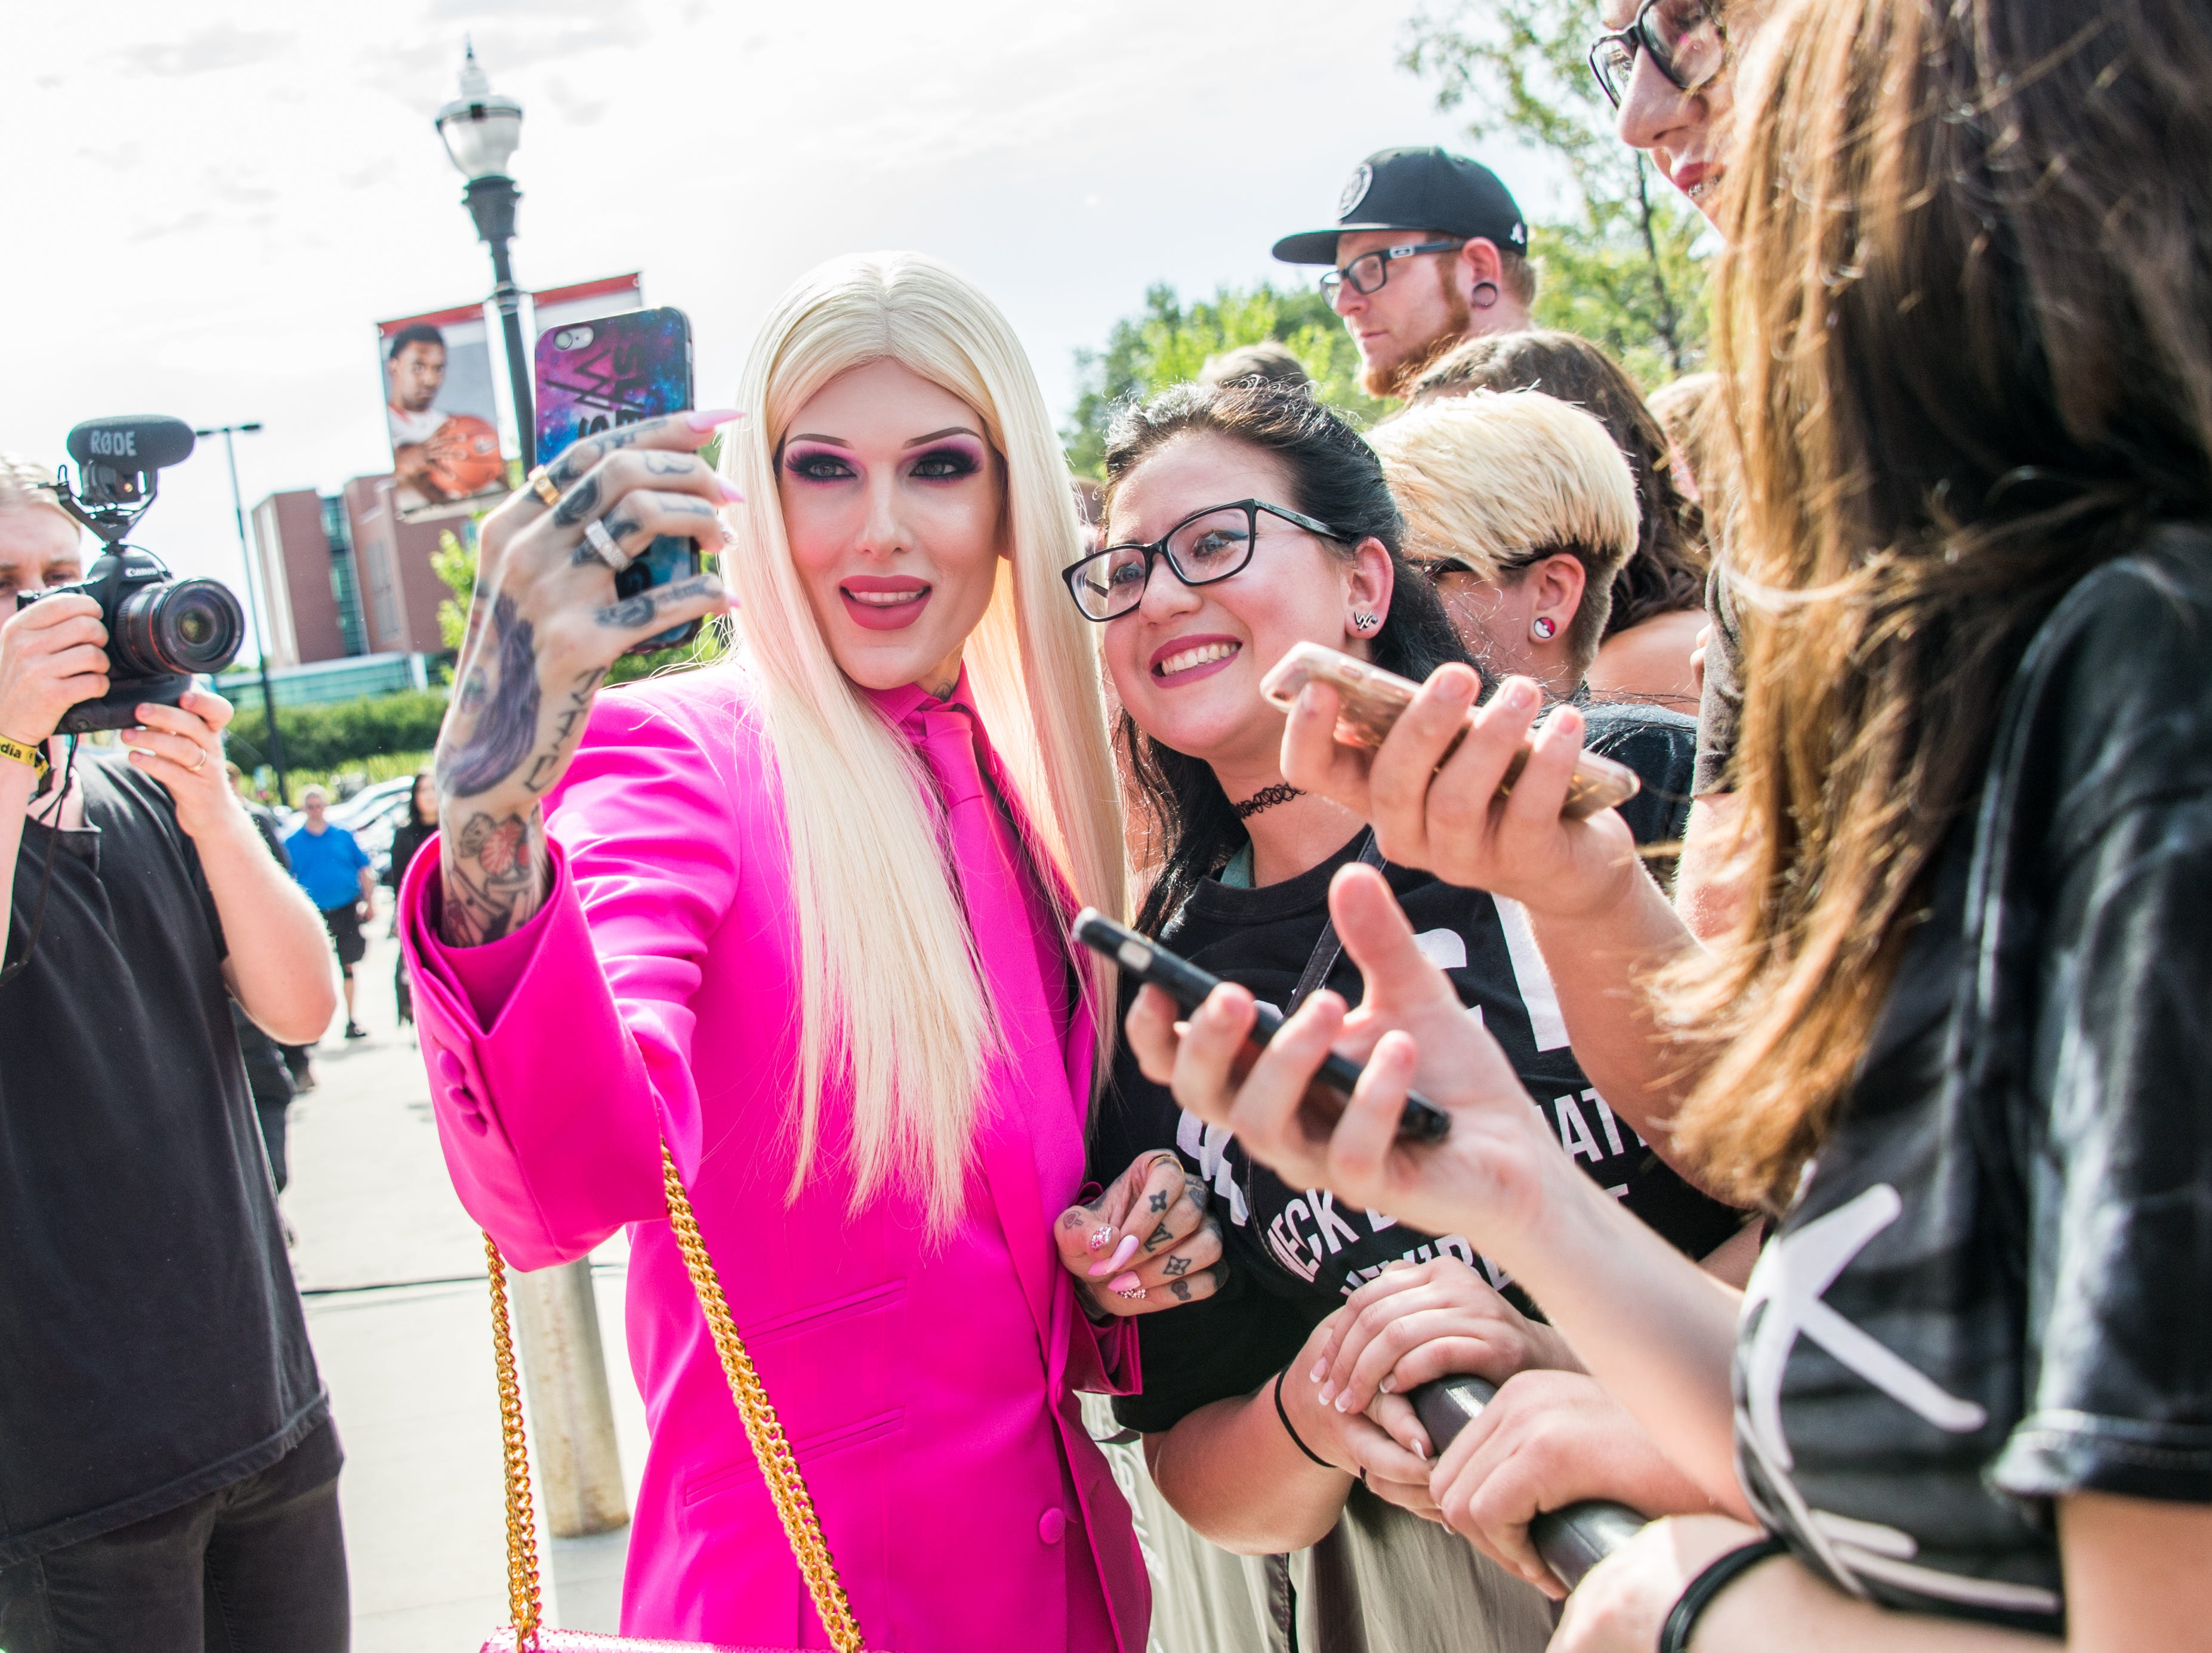 Jeffree Star arrives at the 2016 Journeys AP Music Awards at Value City Arena at the Jerome Schottenstein Center on Monday, July 18, 2016, in Columbus, Ohio. (Photo by Amy Harris/Invision/AP)